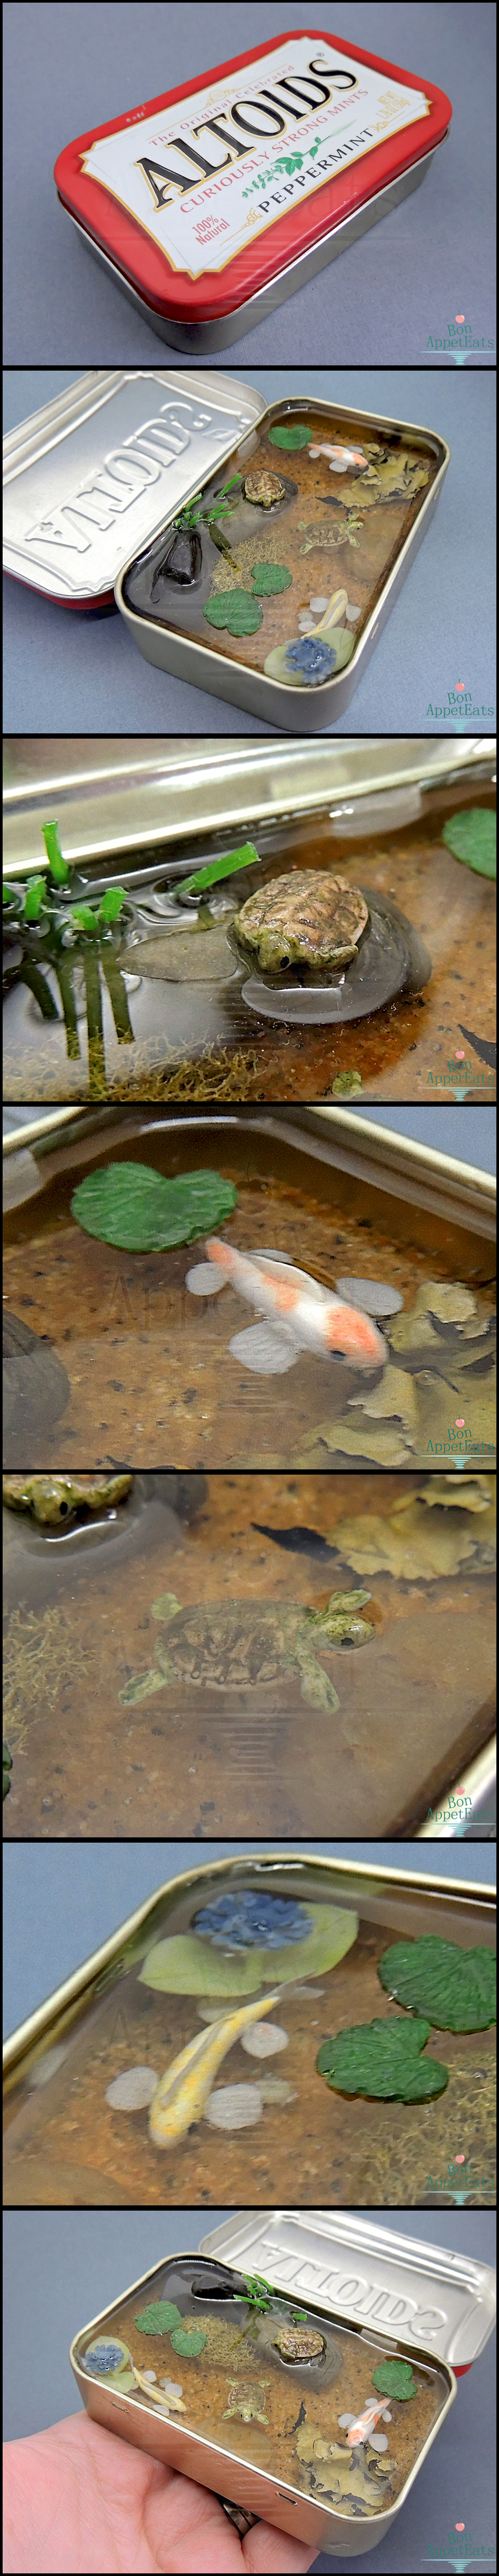 For sale miniature koi and turtle altoids pond by bon for Koi pond plants for sale